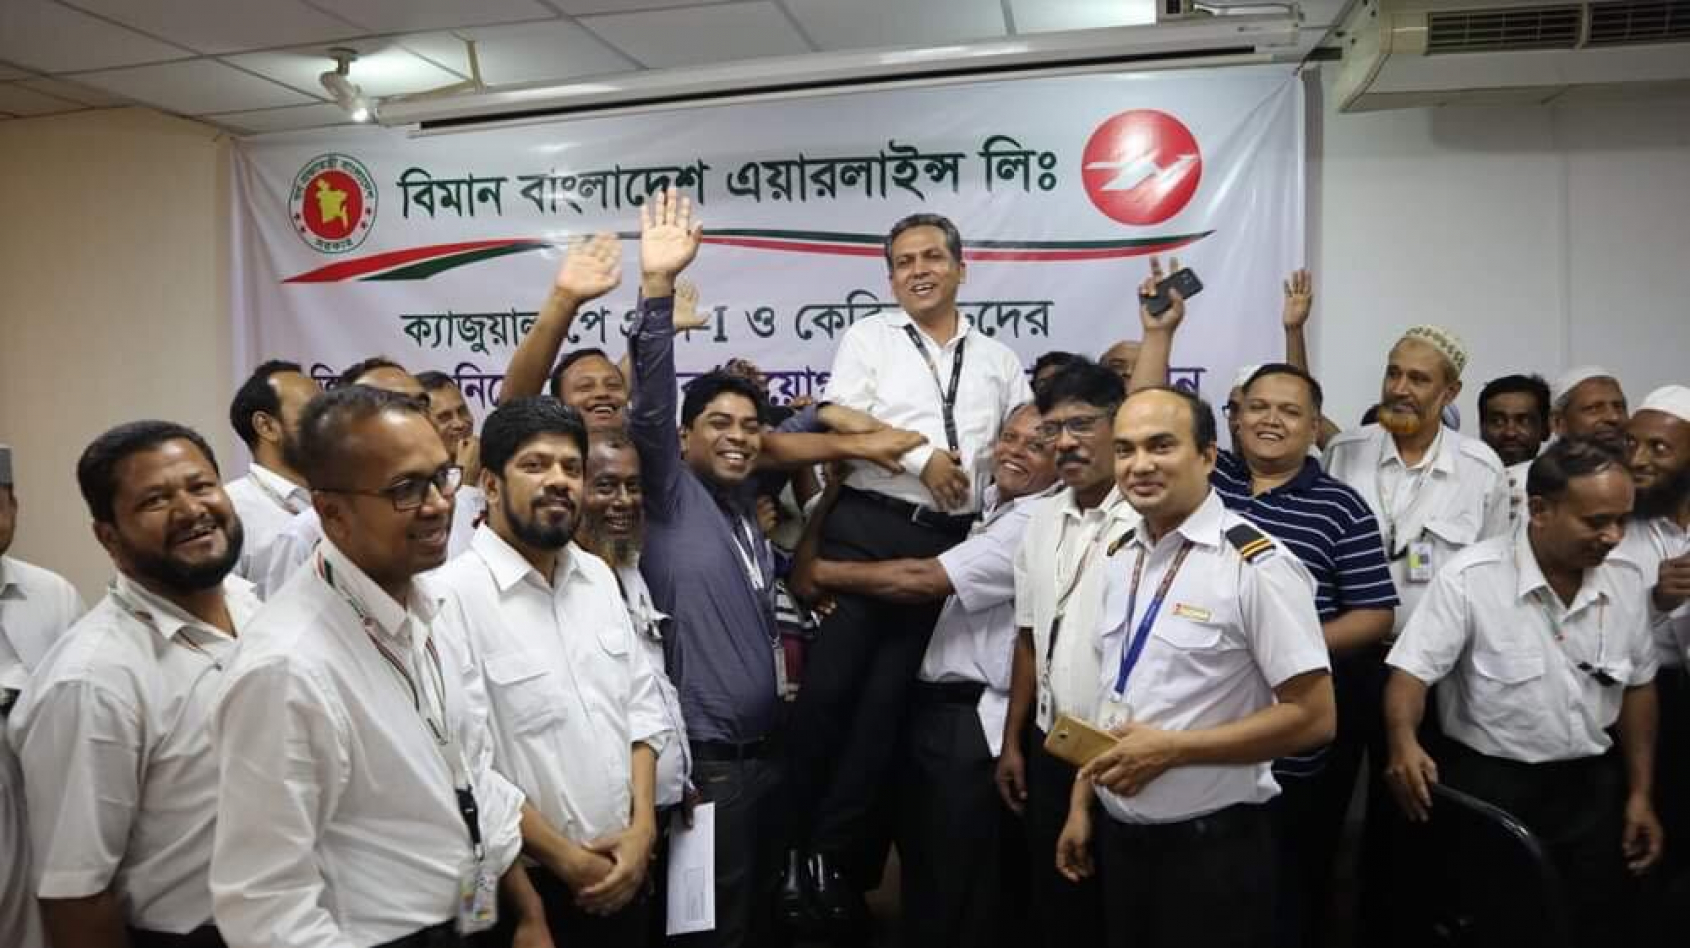 Union campaign wins full contracts for 400+ Bangladeshi airline workers